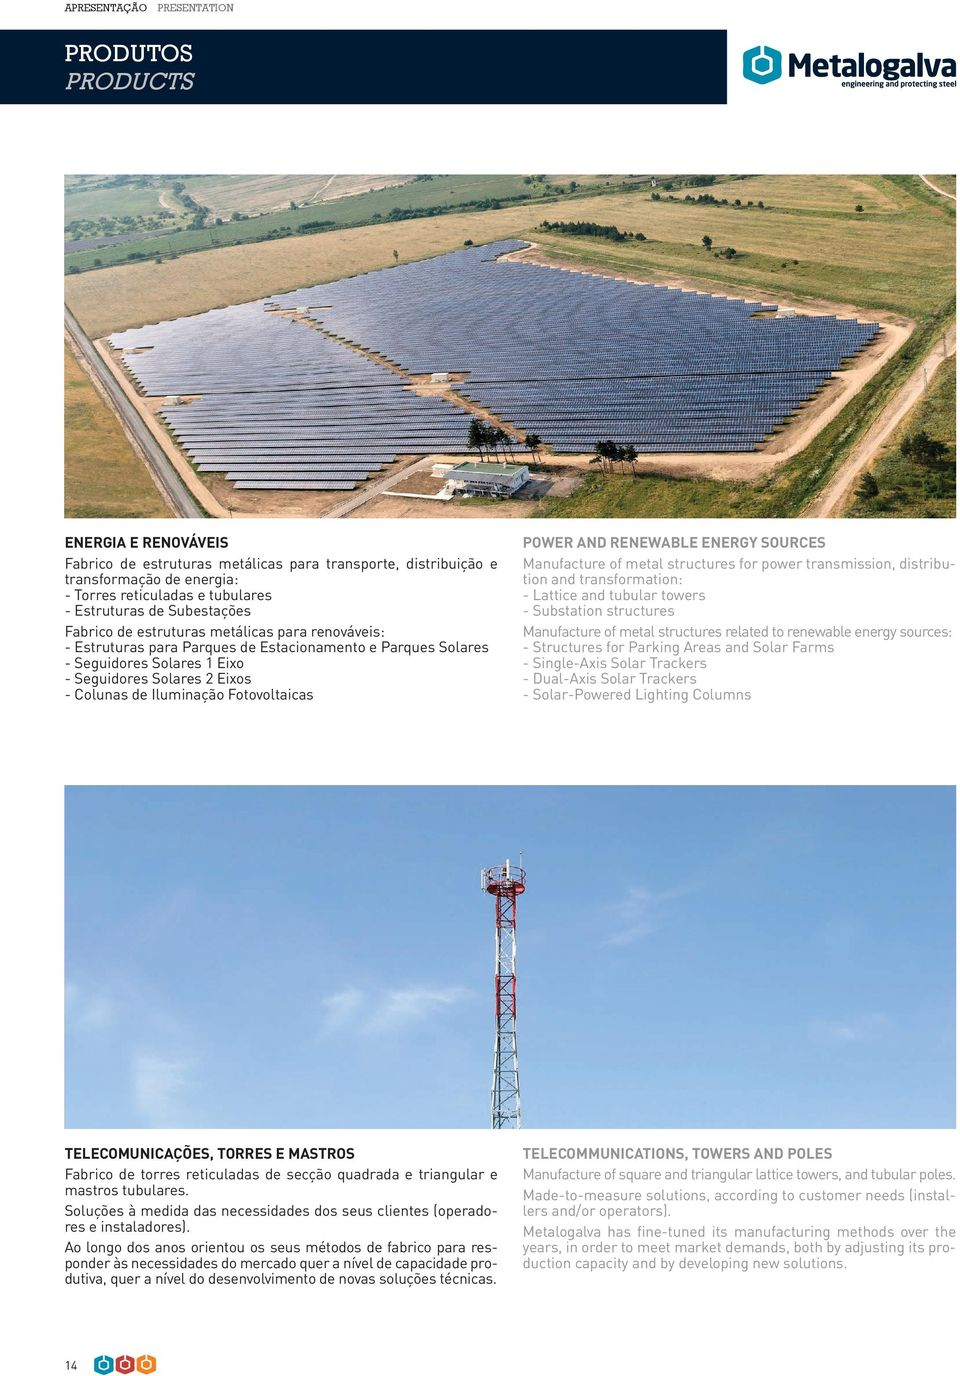 Colunas de Iluminação Fotovoltaicas POWER AND RENEWABLE ENERGY SOURCES Manufacture of metal structures for power transmission, distribution and transformation: - Lattice and tubular towers -